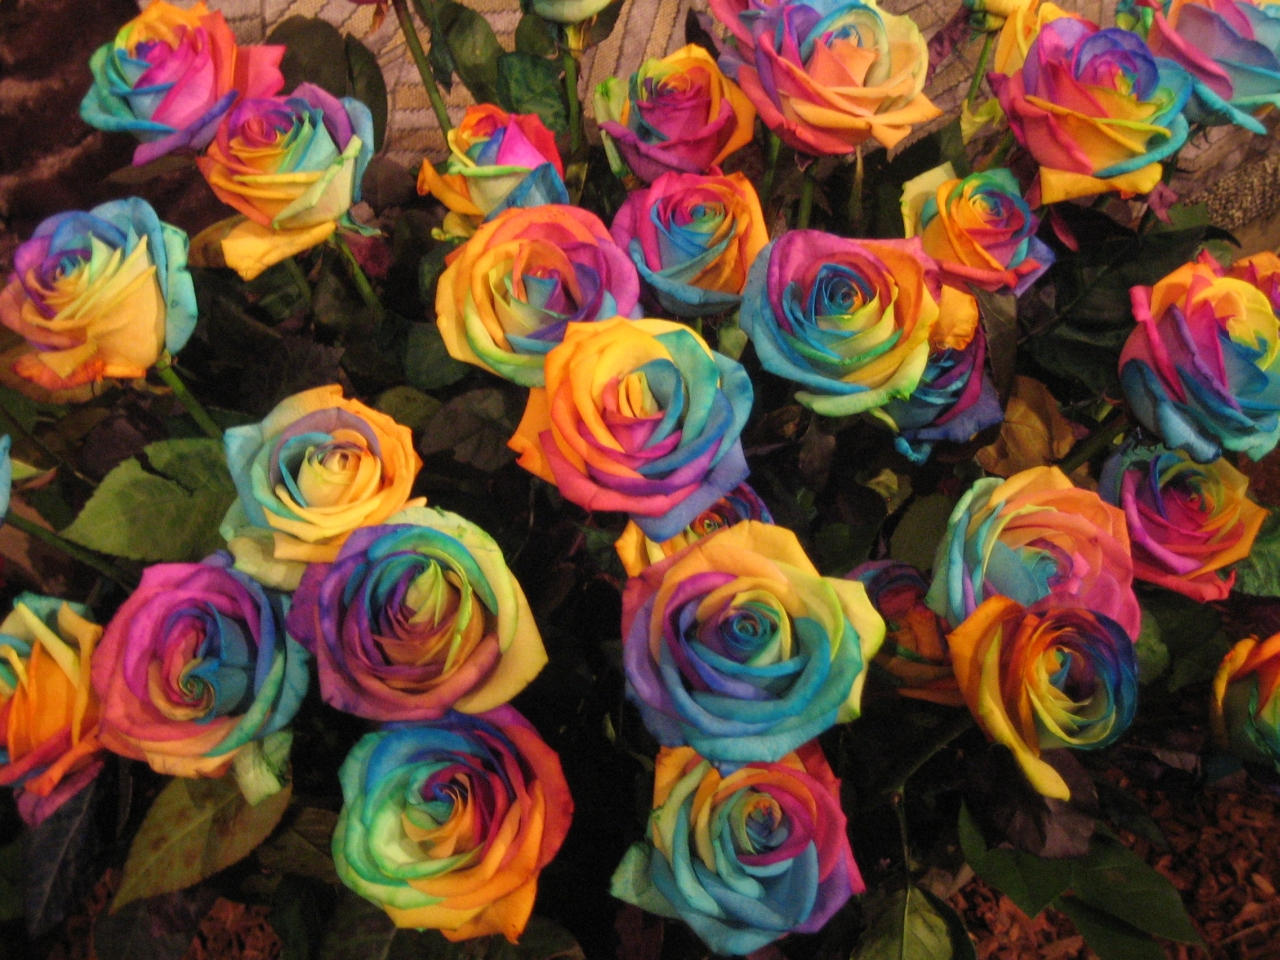 rainbow roses by janine42584 on deviantart